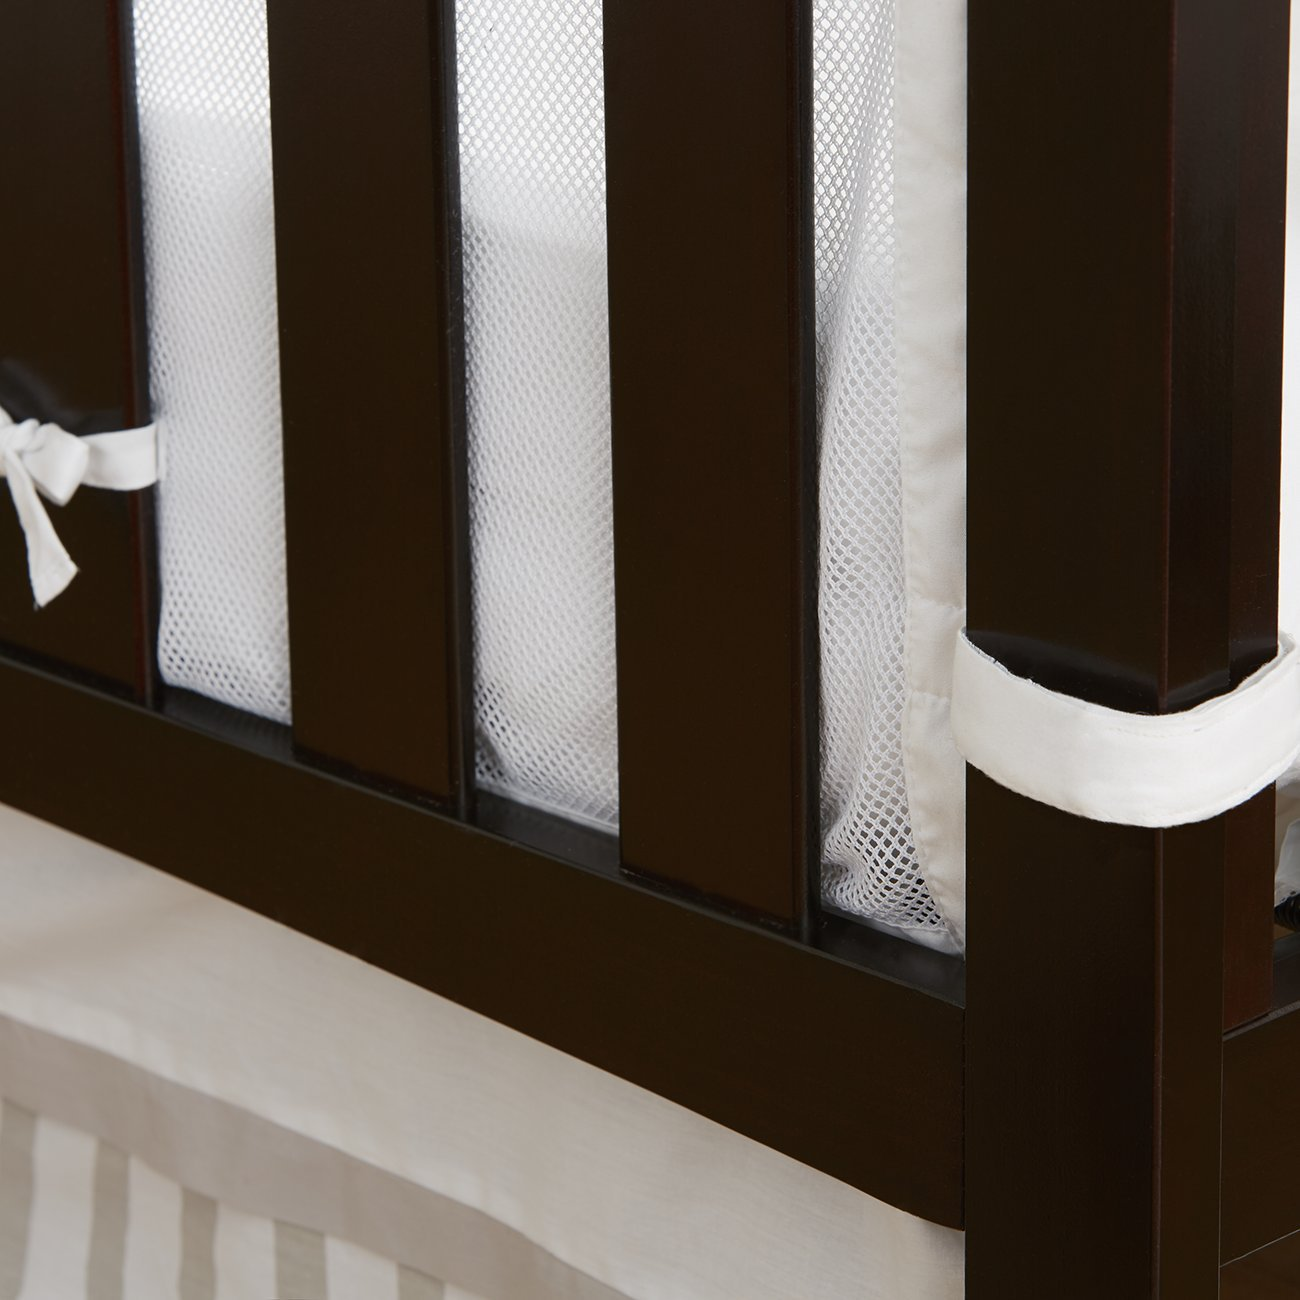 BreathableBaby | Railguard Plus Rail Cover and Liner | Helps Prevent Baby From Gnawing on Wood Rails |Helps Prevent Arms and Legs from Getting Stuck Between Crib Slats | White by BreathableBaby (Image #3)